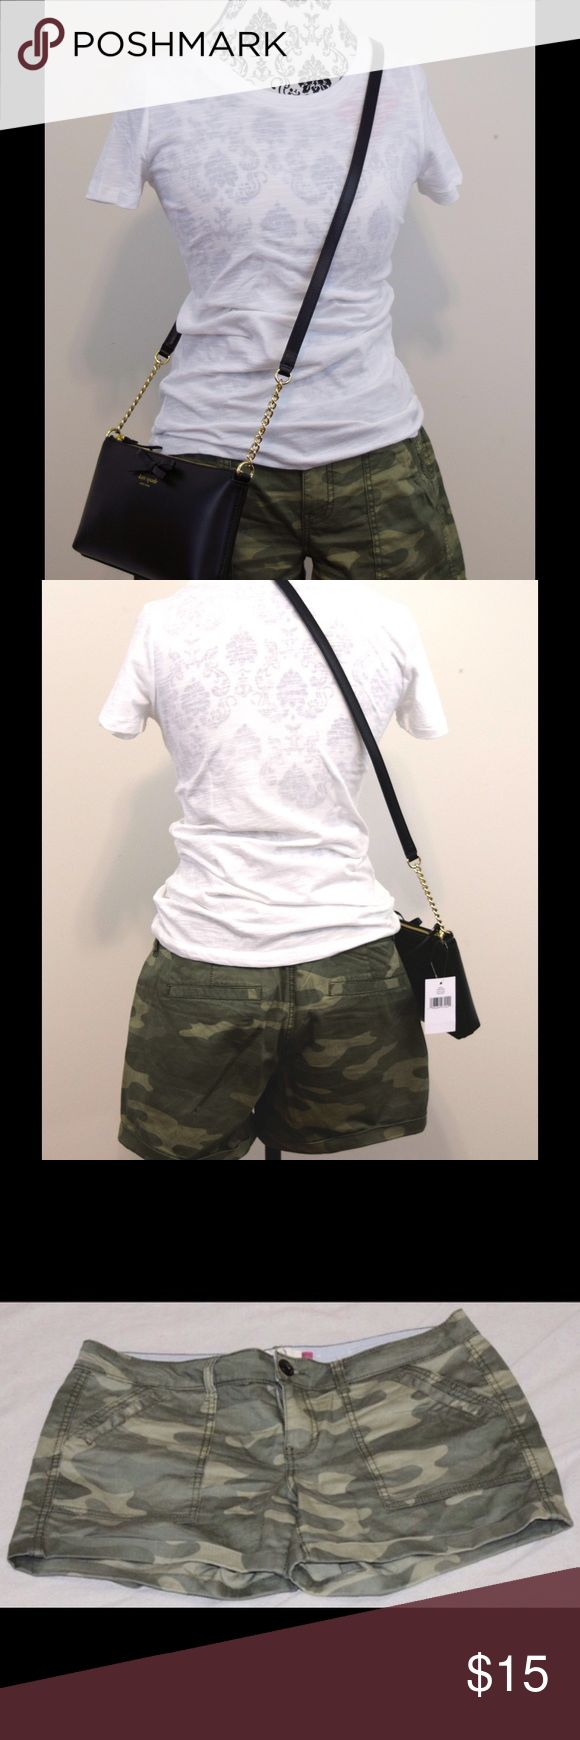 "NWOT Camo Shorts New without tags, never worn! Camo cuffed  shorts with back slit pockets. 3.5"" inseam, 98% cotton, 2% spandex. Size 11. Complete the look- shirt and purse also available. Bundle the outfit and save 10%! SO Shorts"